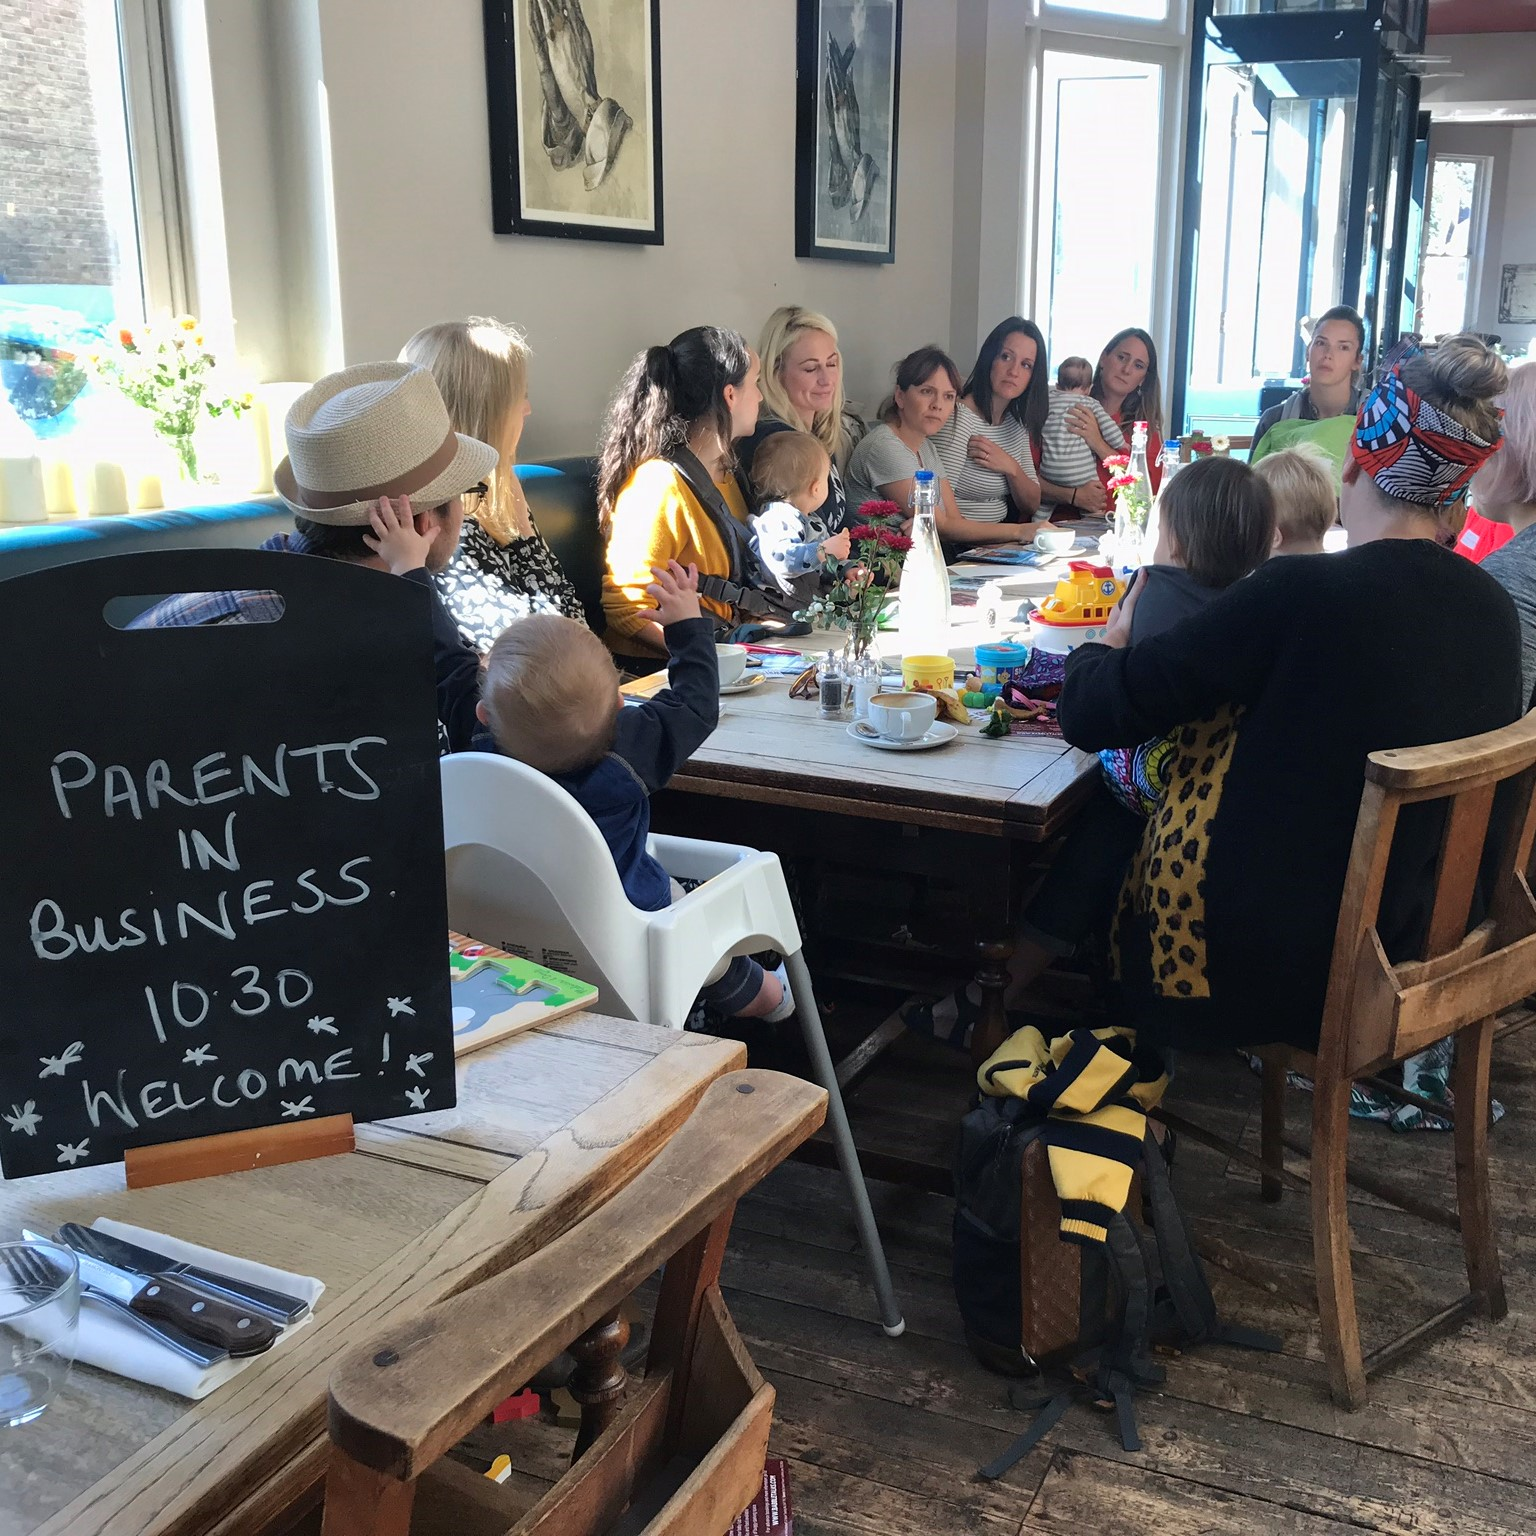 Parents in Business - Networking for local parents, led by Social Media Consultant Angharad Monthly at 10.30am - 12pm